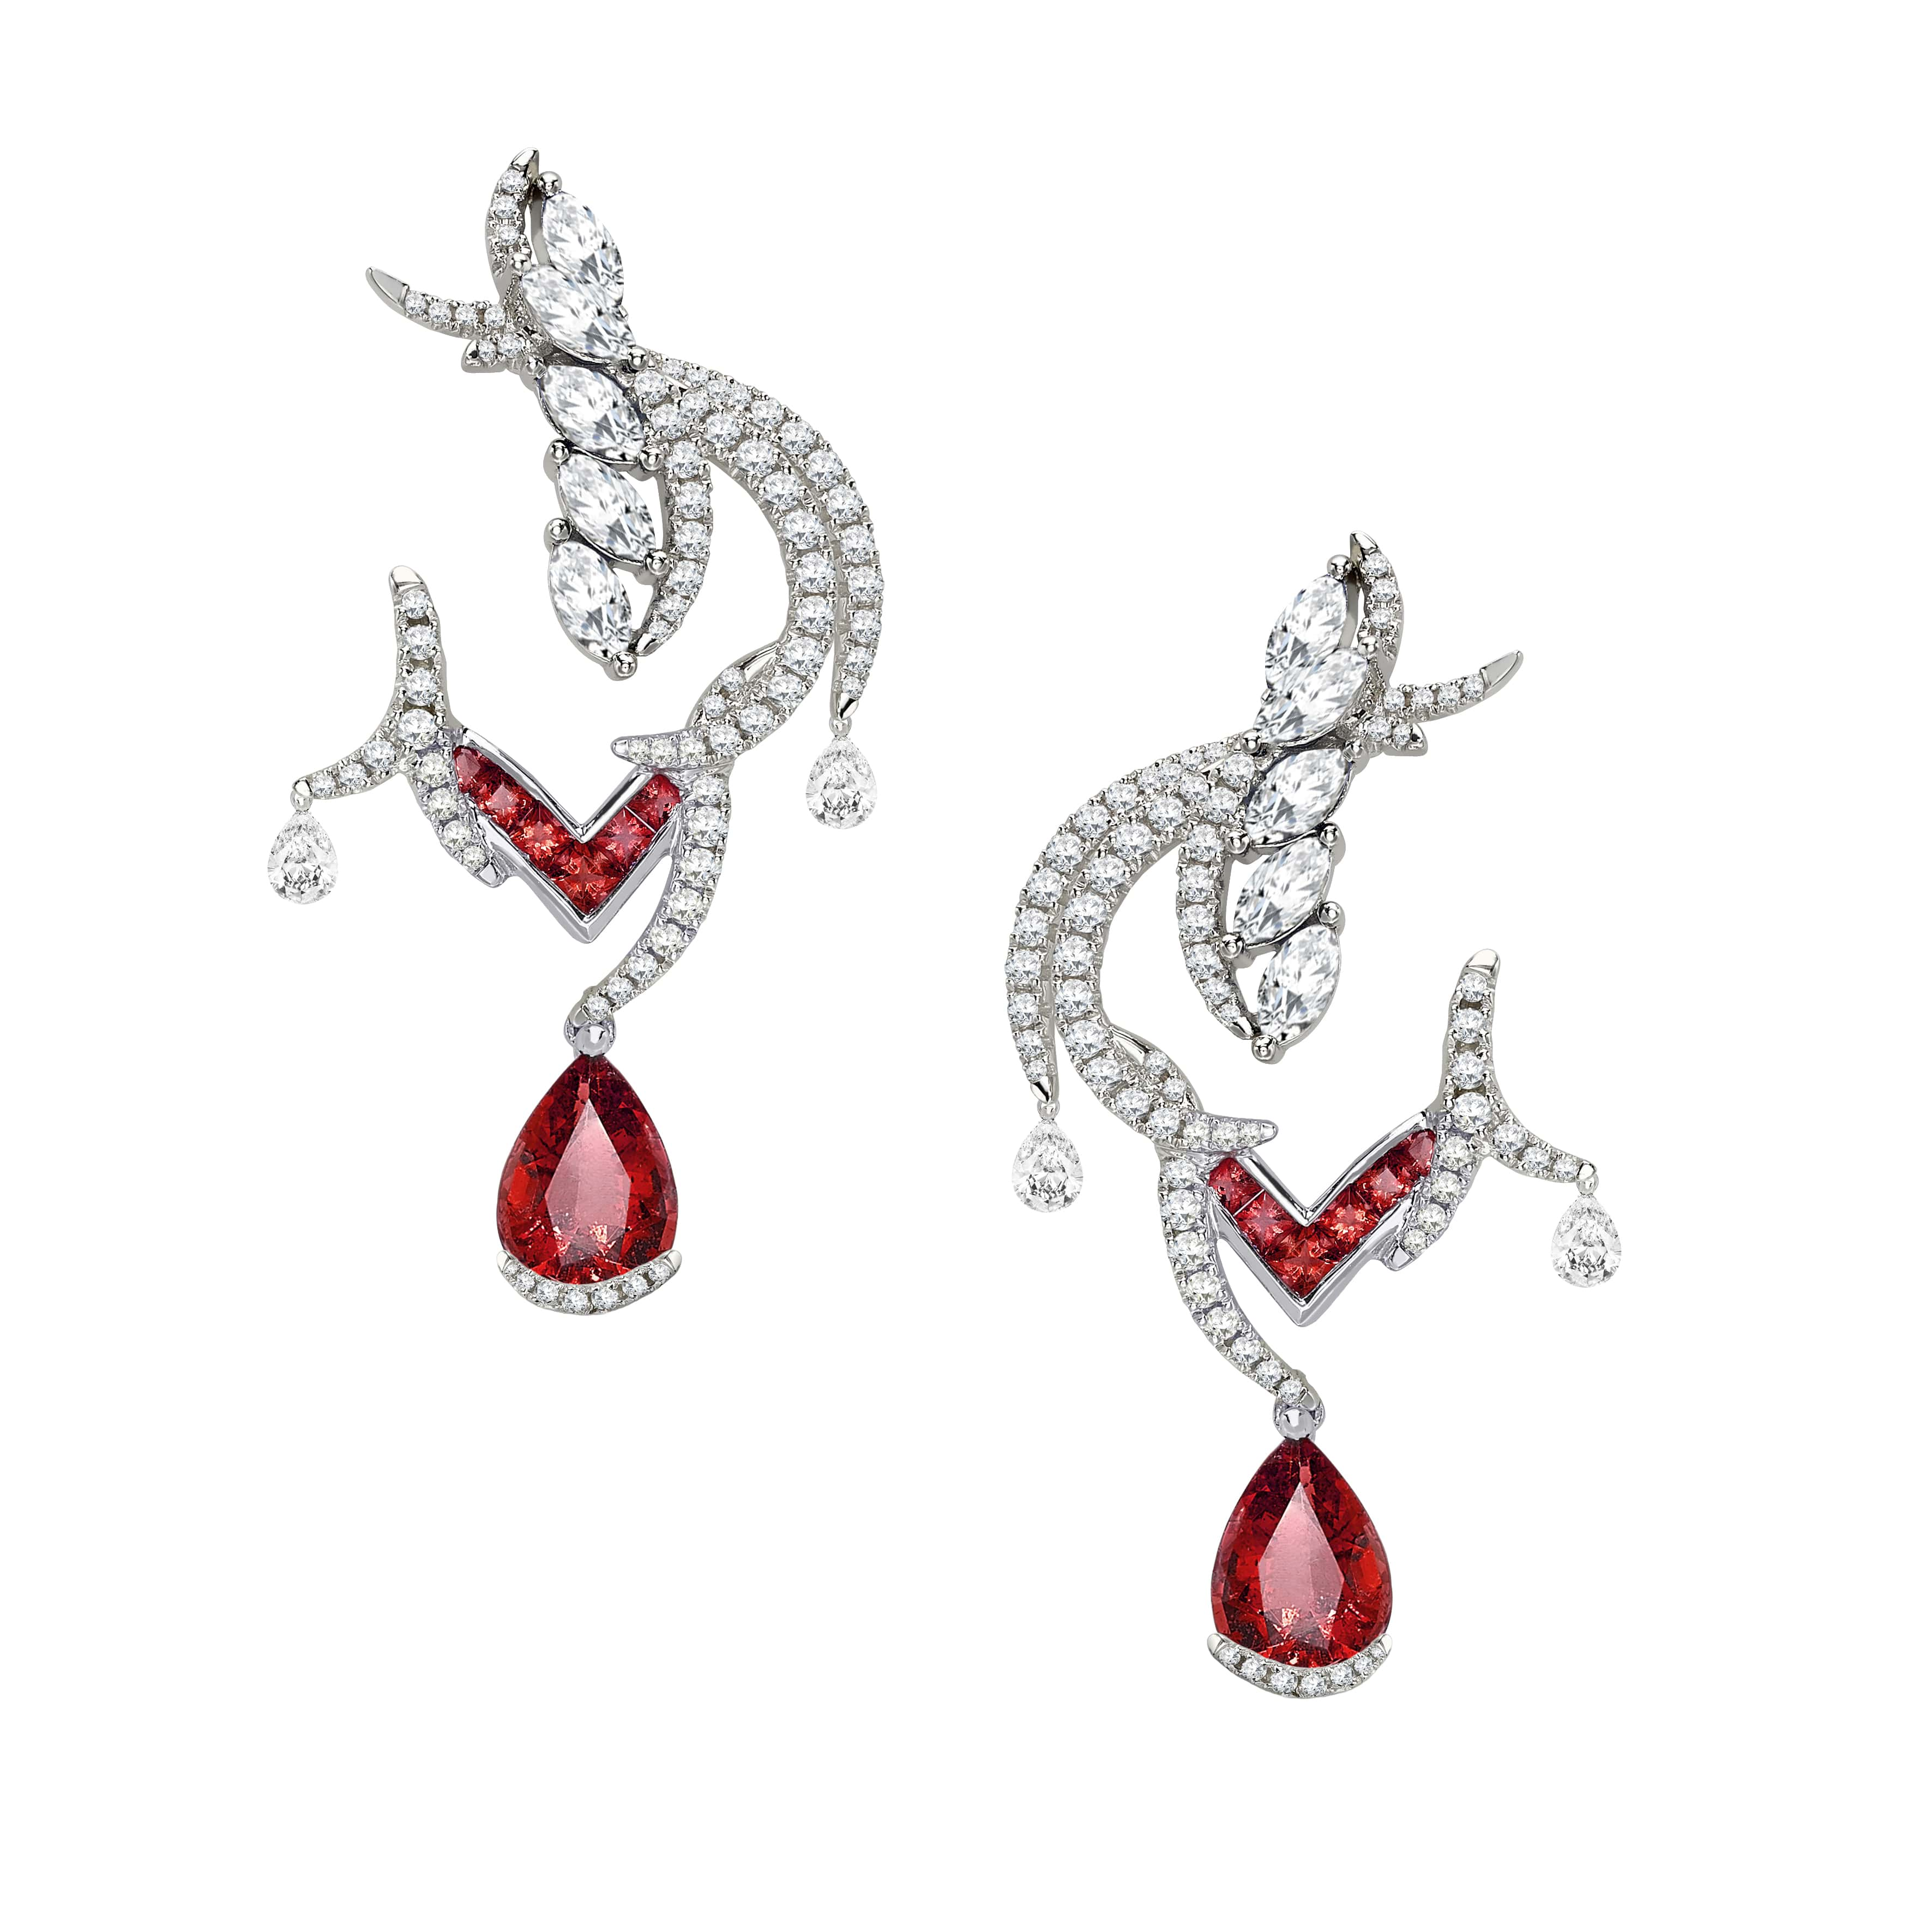 Imperial-Crest-Earrings-Ruby-with-Dimond-caps-Sarah-Ho